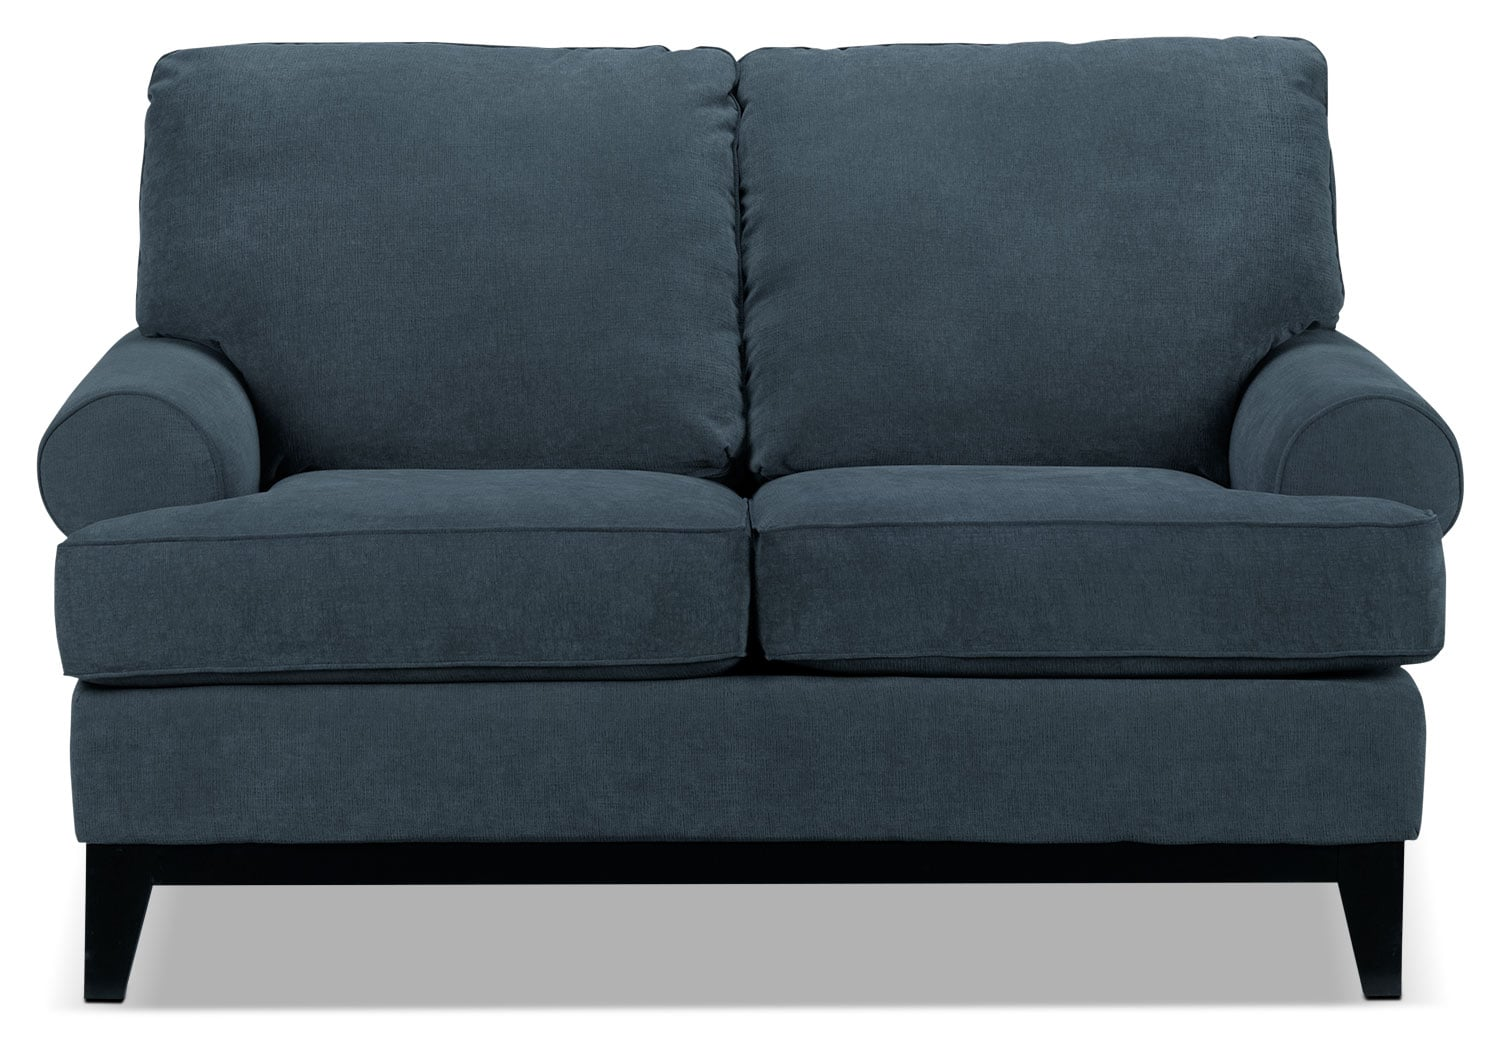 Living Room Furniture - Crizia Loveseat - Navy